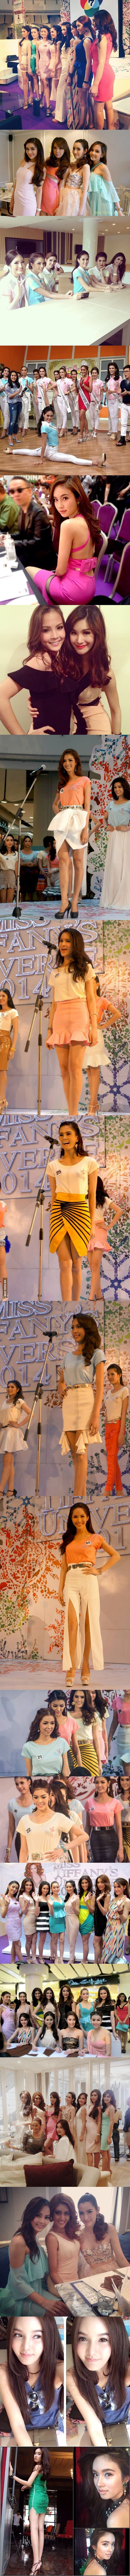 Definitely fooled me...! The ladyboy pageant of Thailand